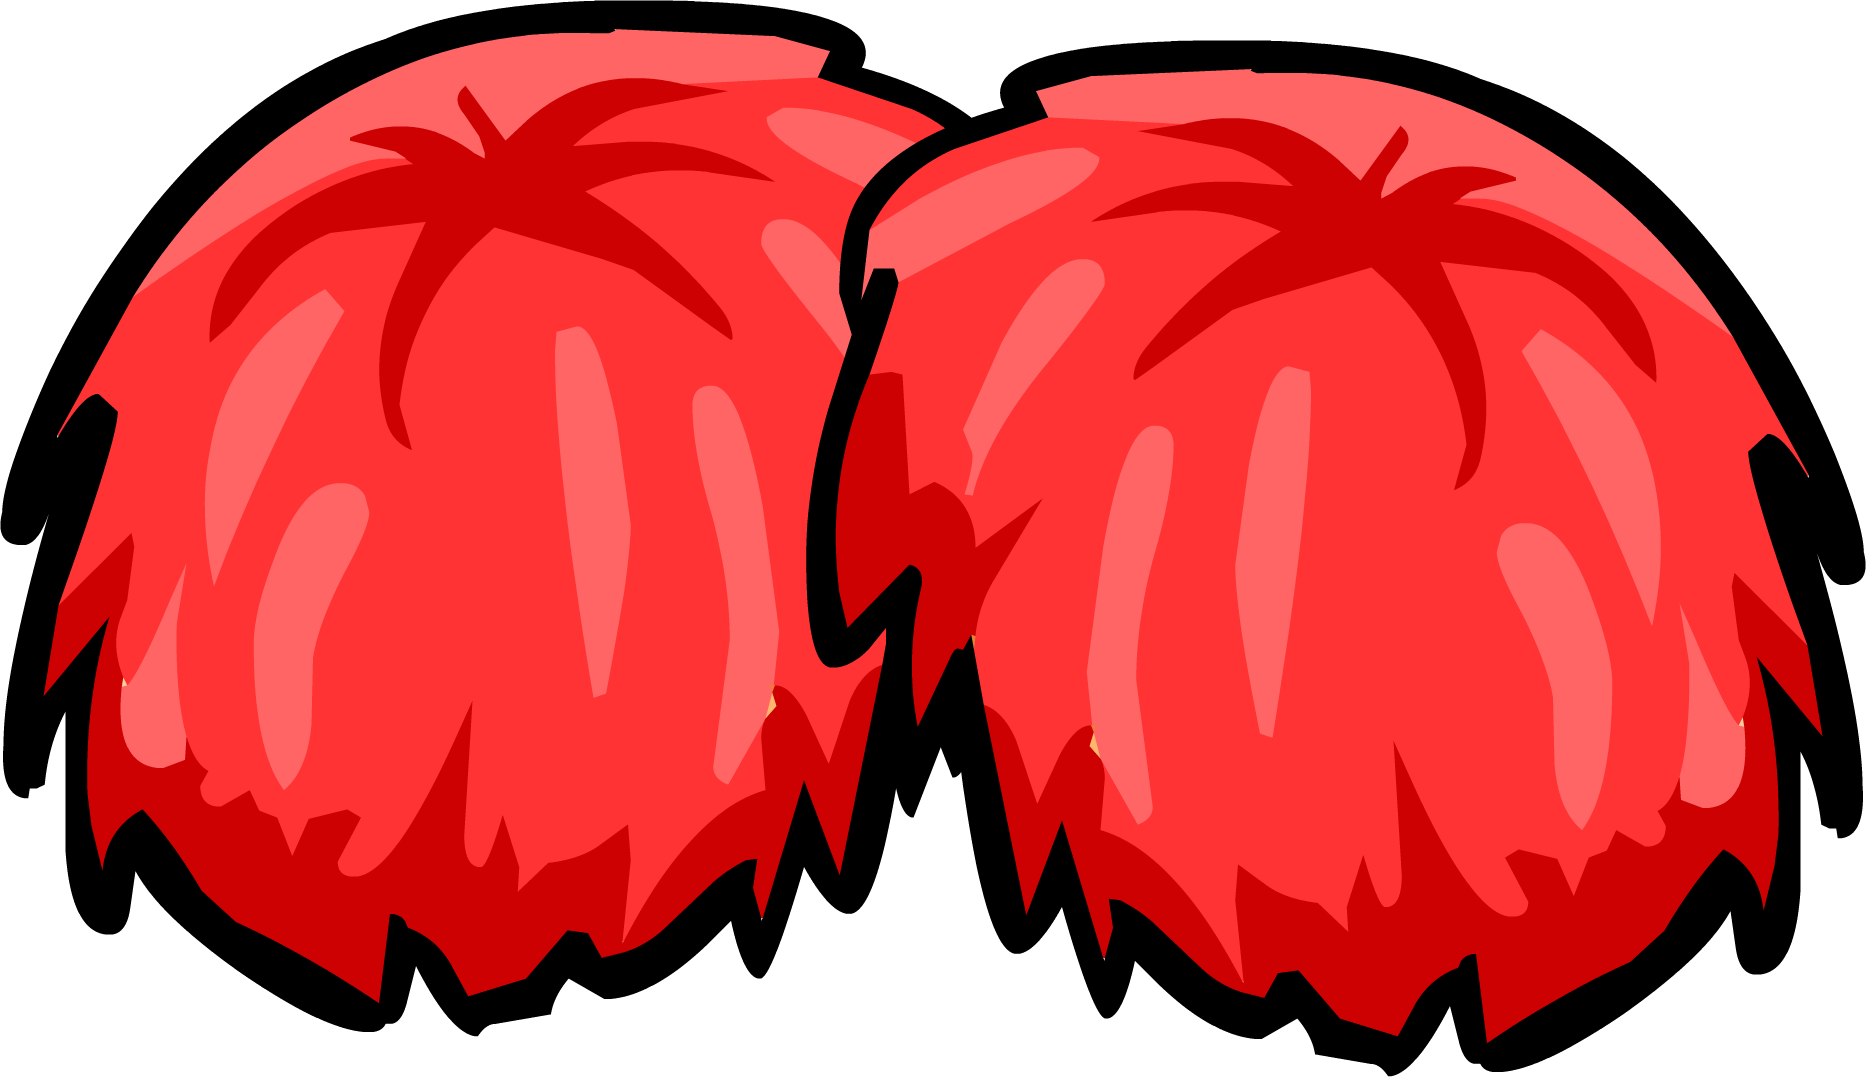 Club clipart pompom Wikia  by Wiki Fandom